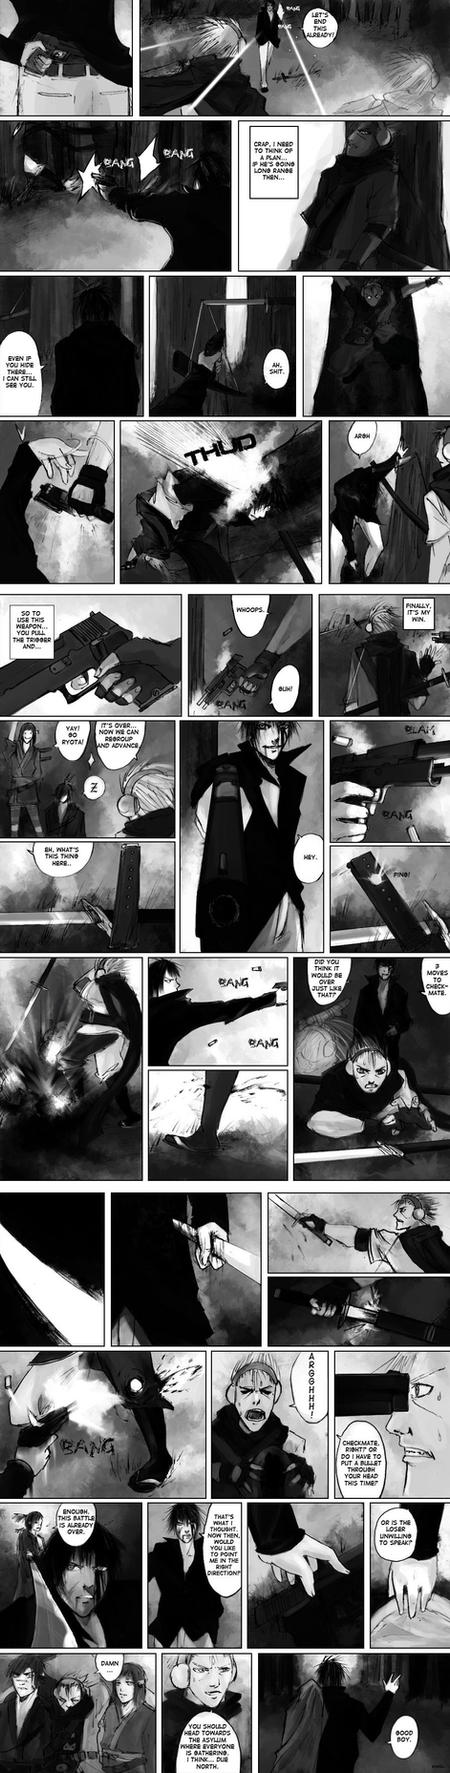 Endzone: Round 1 Pages 7-9 by Ma-sterSolly